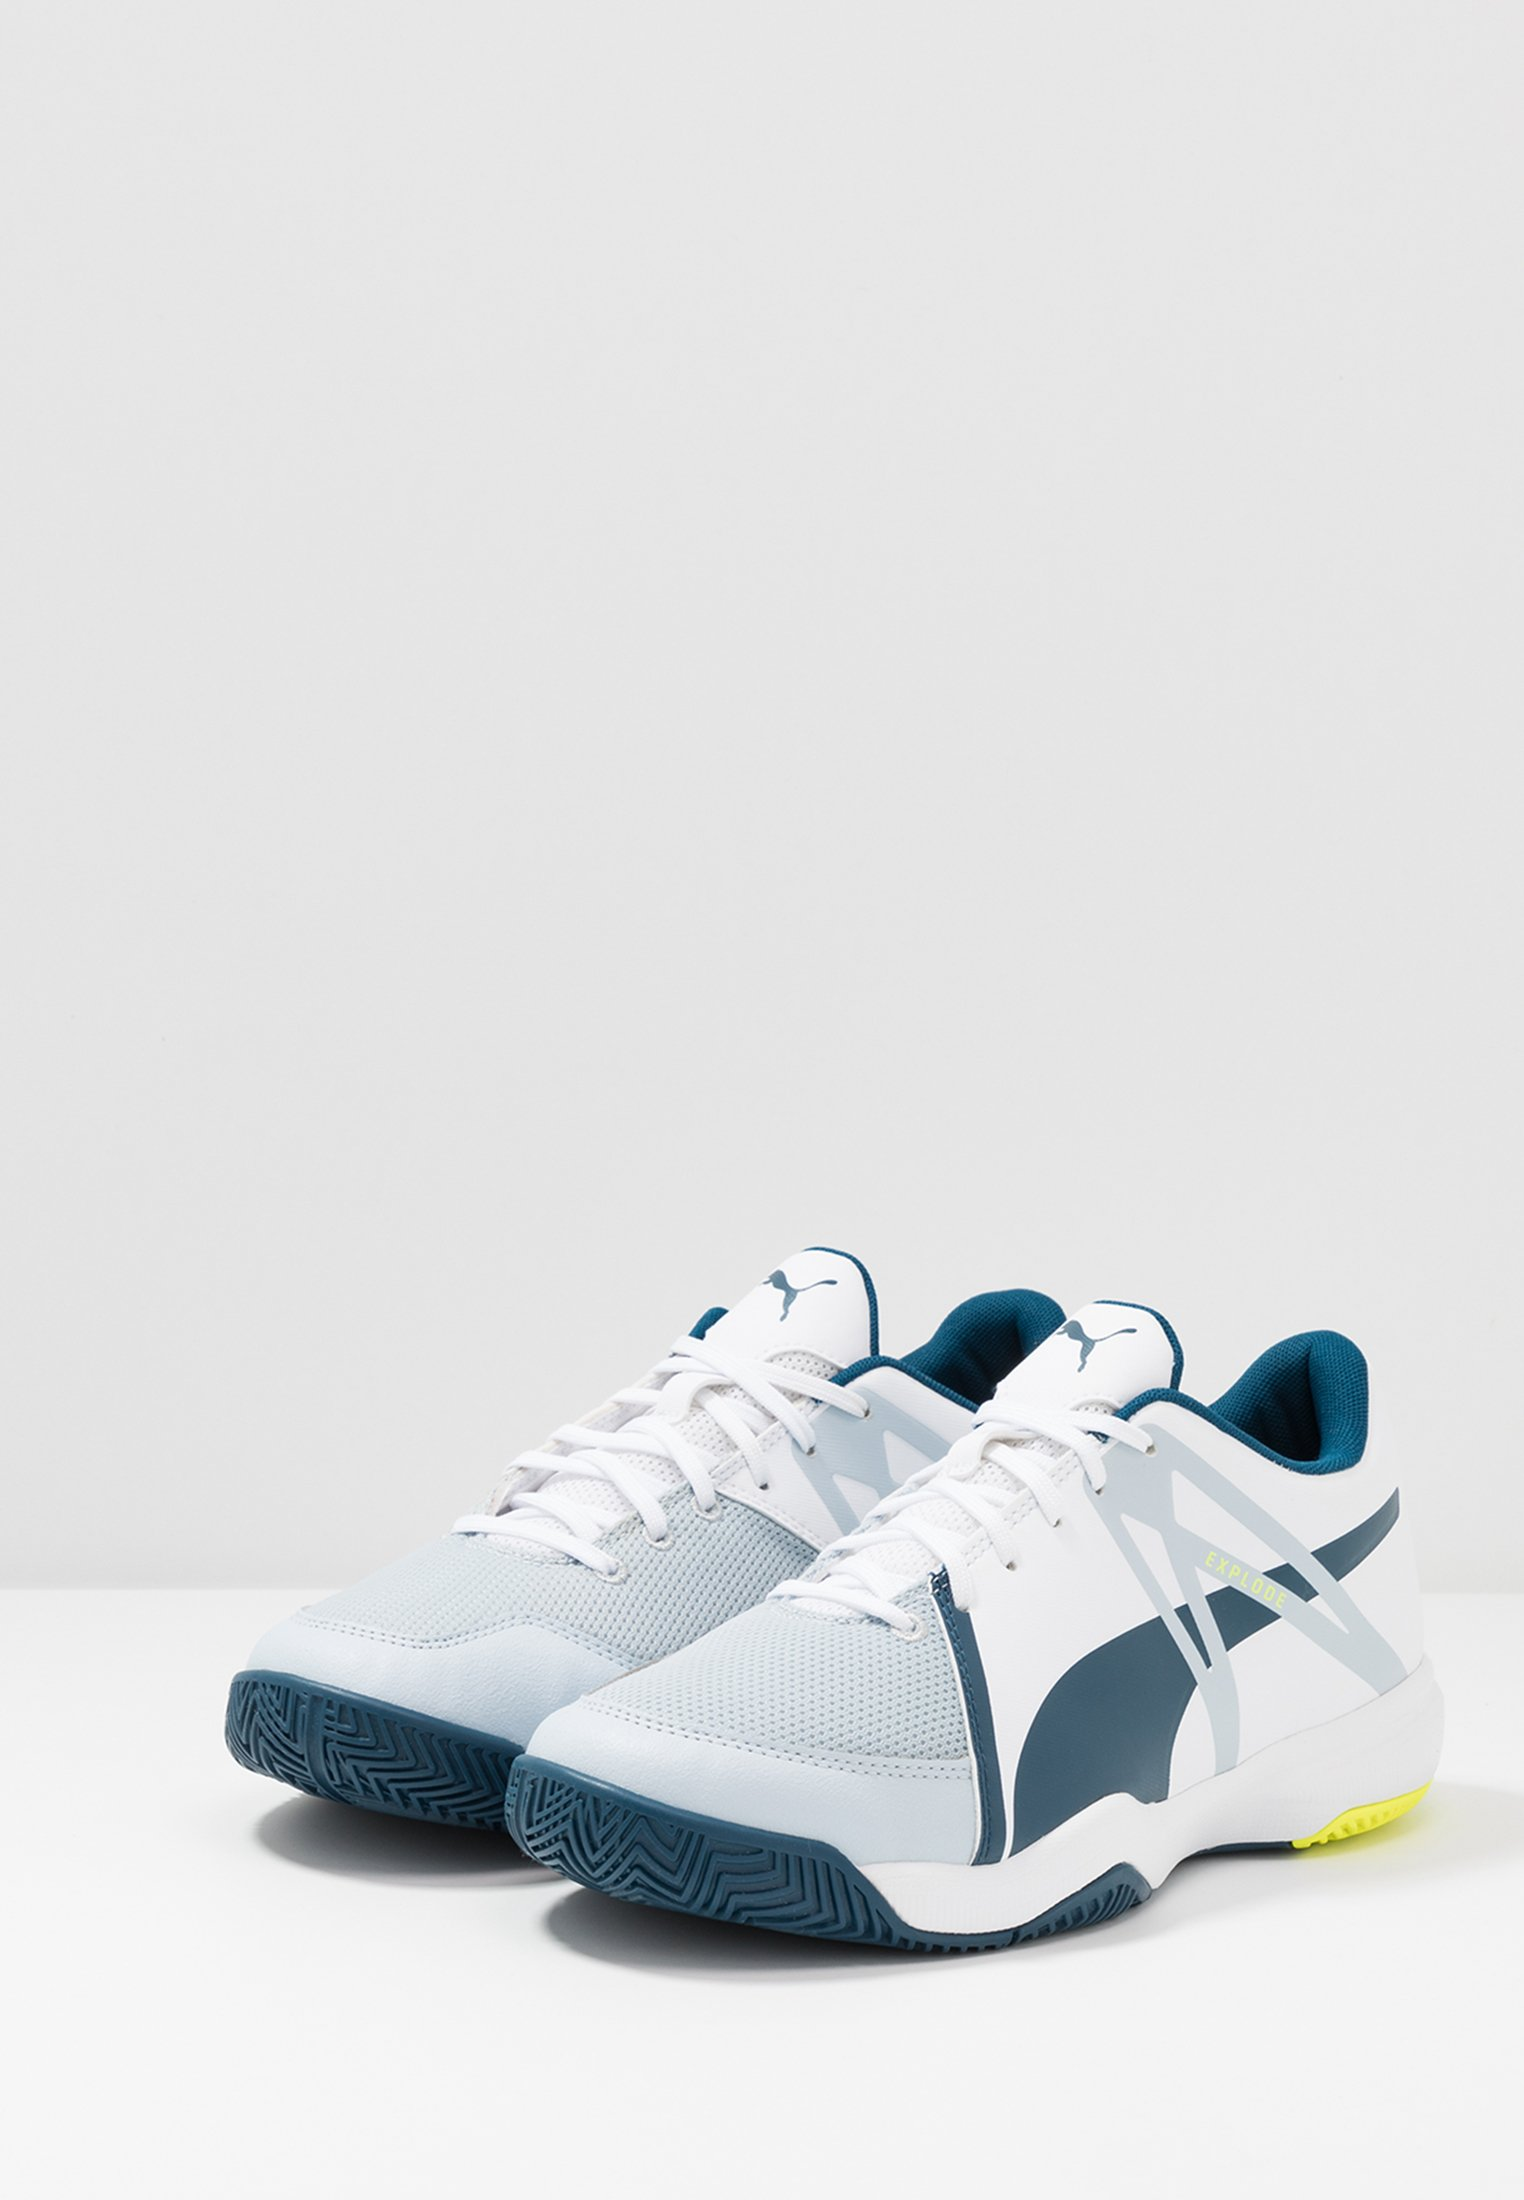 Puma EXPLODE XT 3 - Handballschuh - white/grey dawn/safety yellow/gibraltar sea - Black Friday